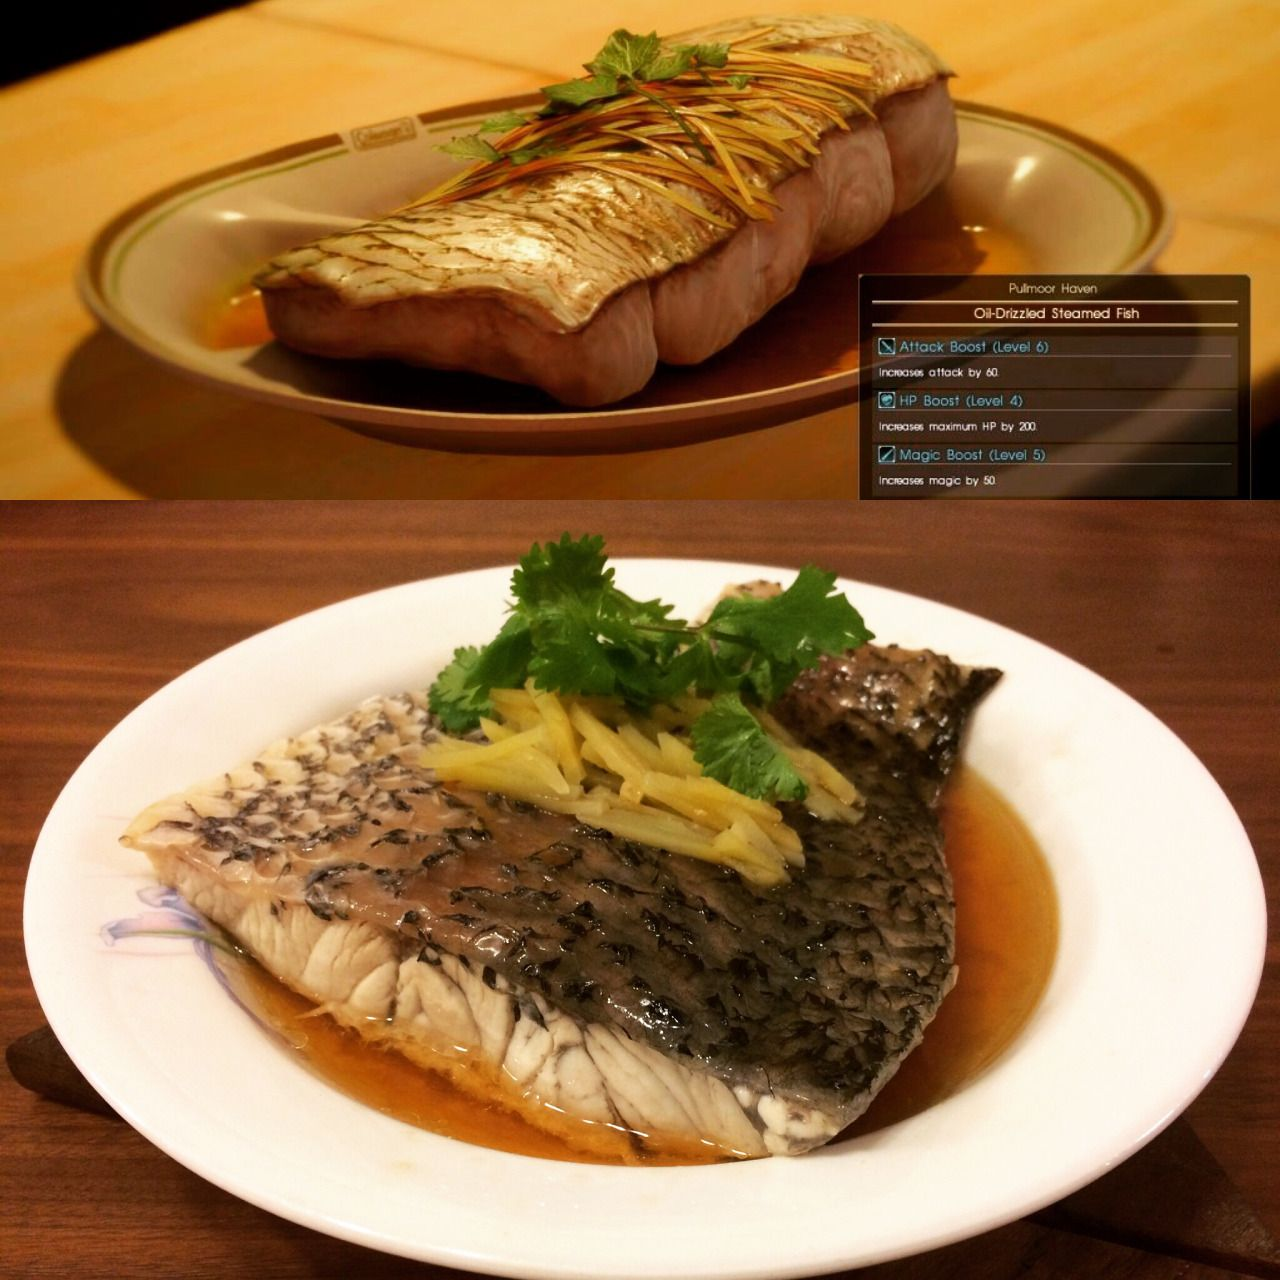 Ffxv cooking recipe oil drizzled steam fish from oil drizzled steamed fish from final fantasy xv for time with the folks at fandom foodies and im really excited to try out some recipes even if i dont forumfinder Image collections